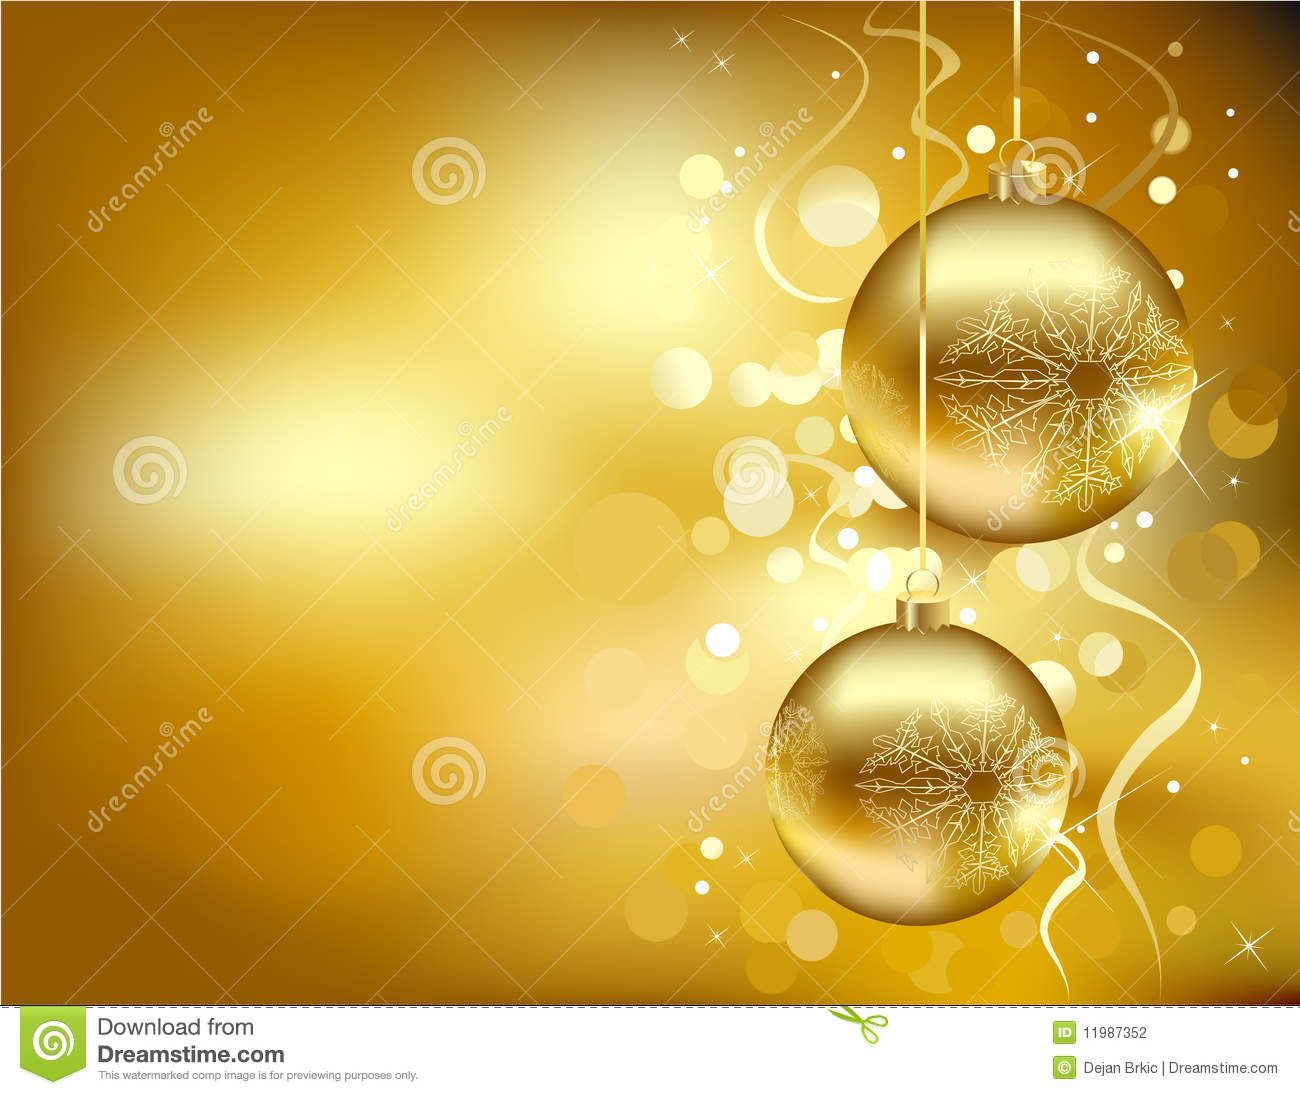 Golden Christmas Decorations From Over 47 Million High Quality Stock Photos Images Vectors Sign Up For Free Today Image 11987352